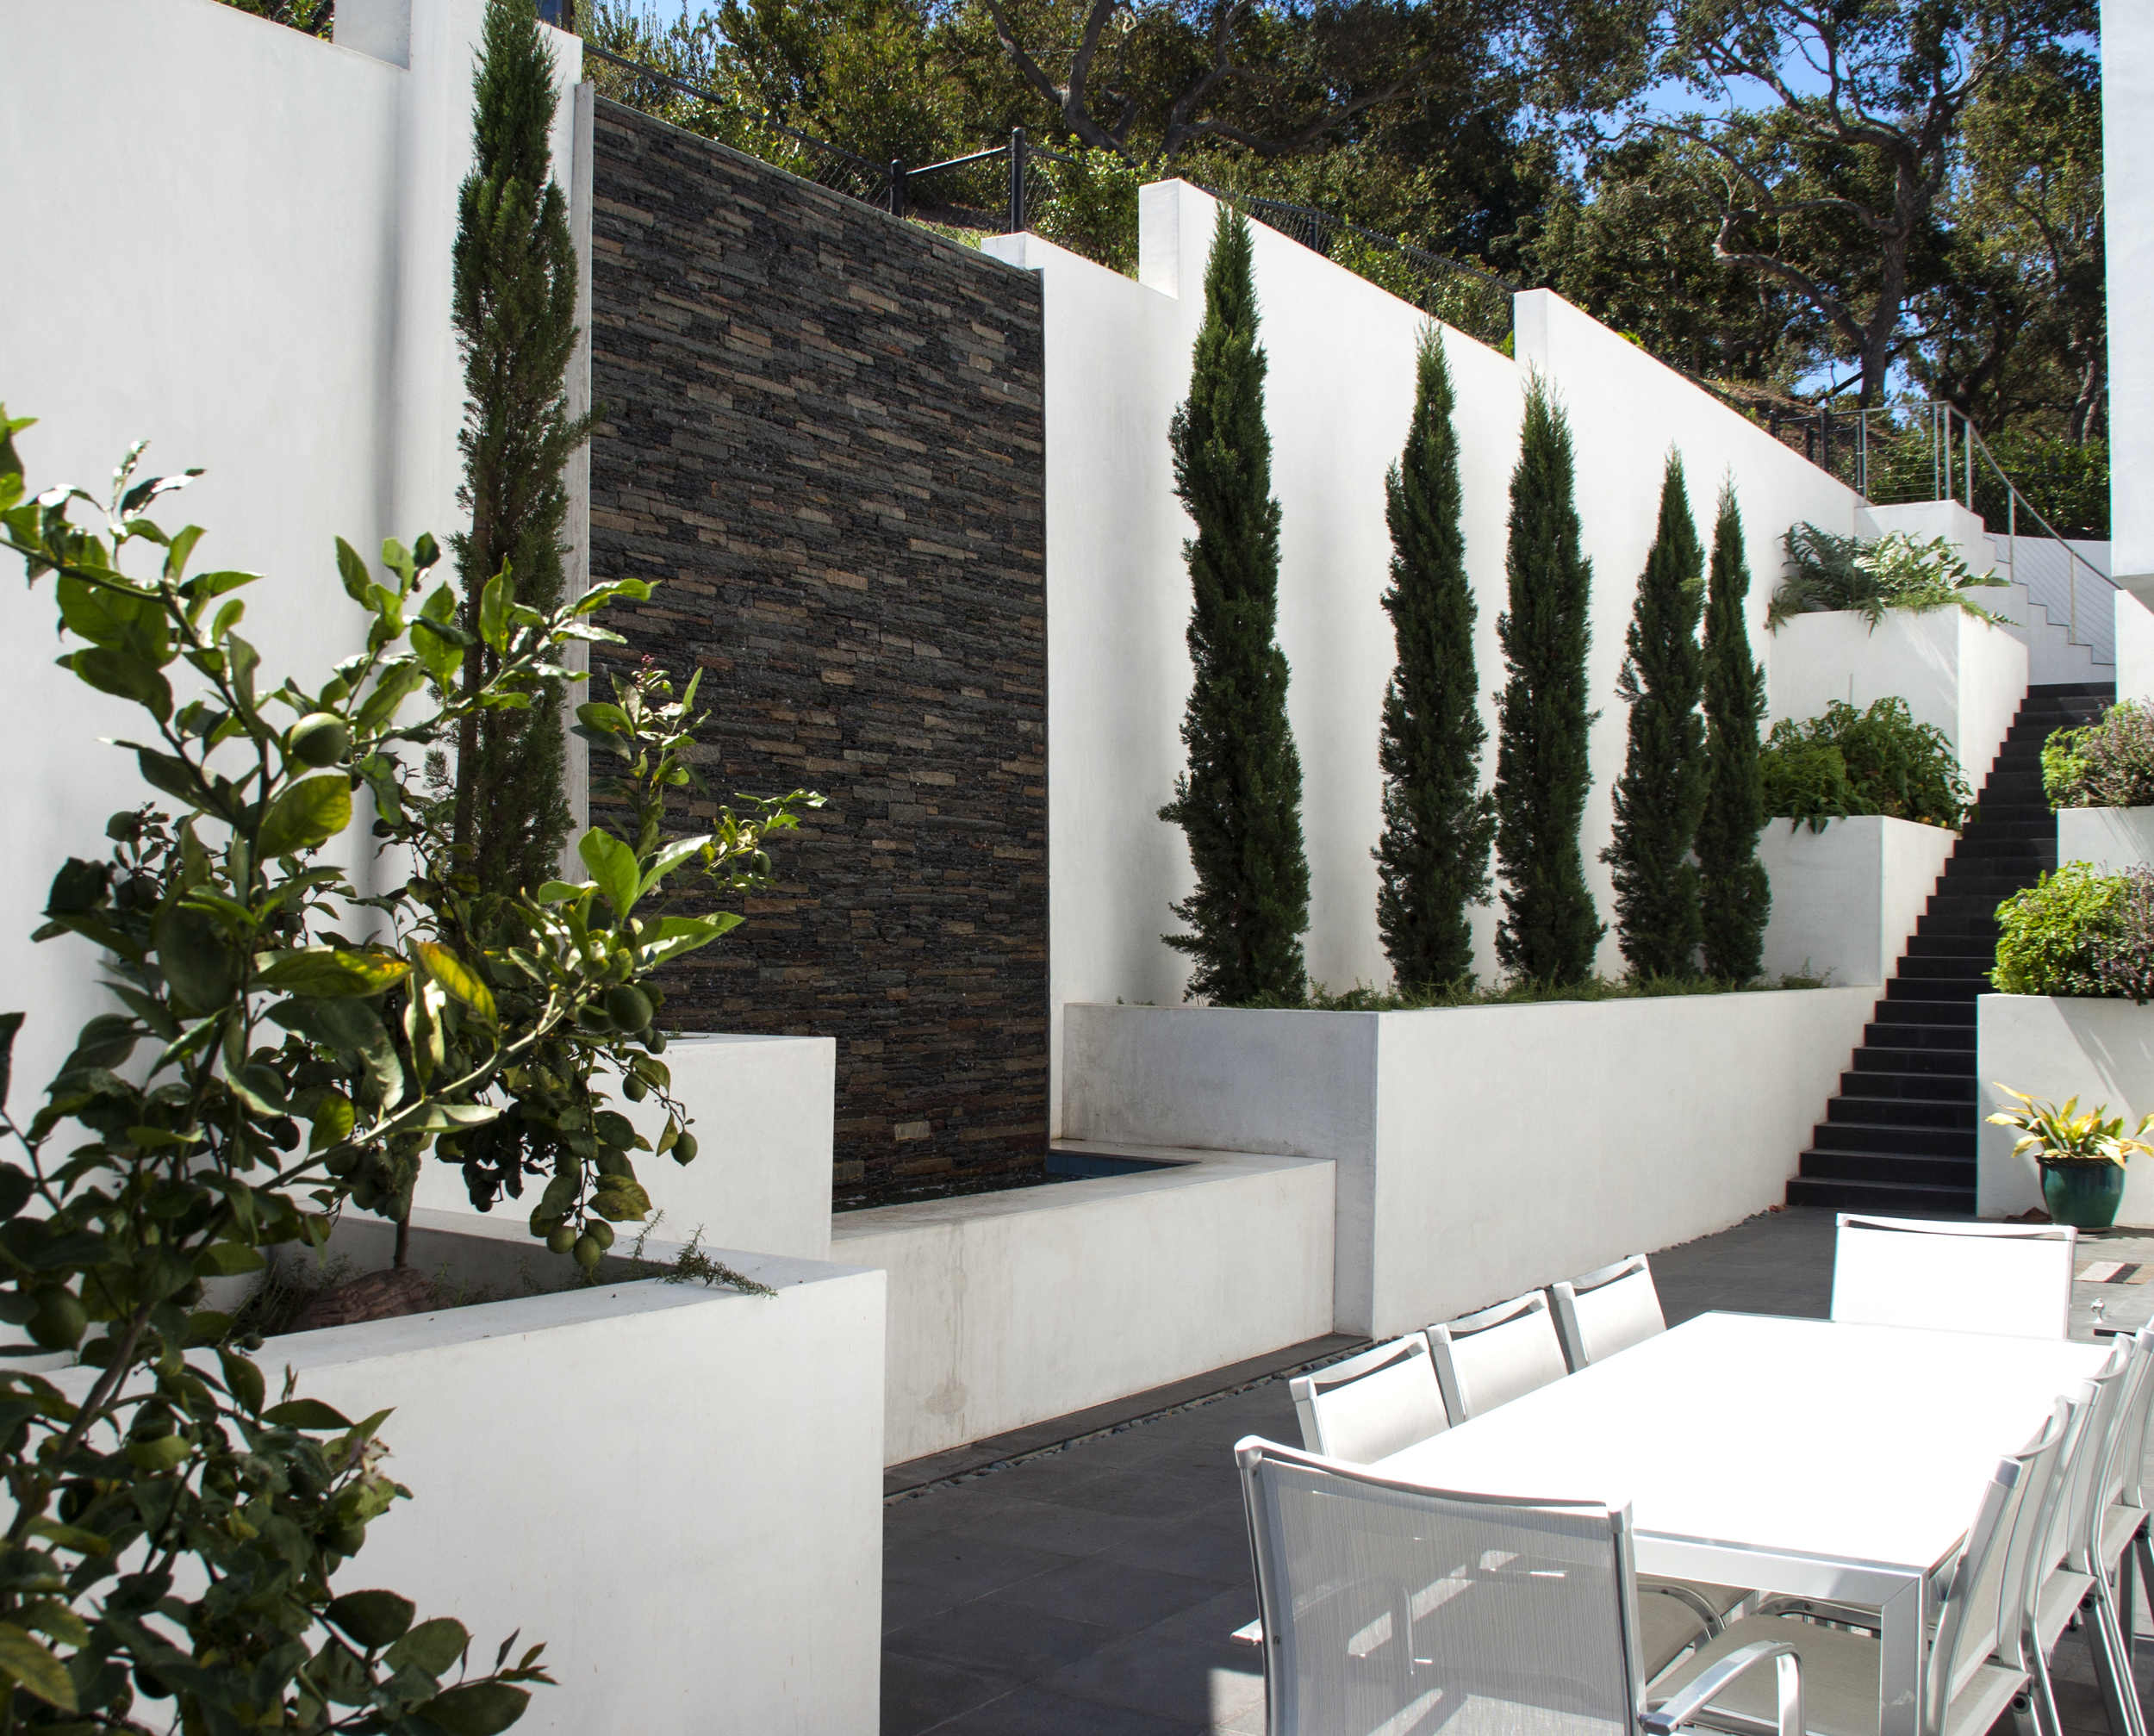 A captivating wall water feature with a striking white wall and lush green landscape make for a enjoyable backdrop for any type of gathering.